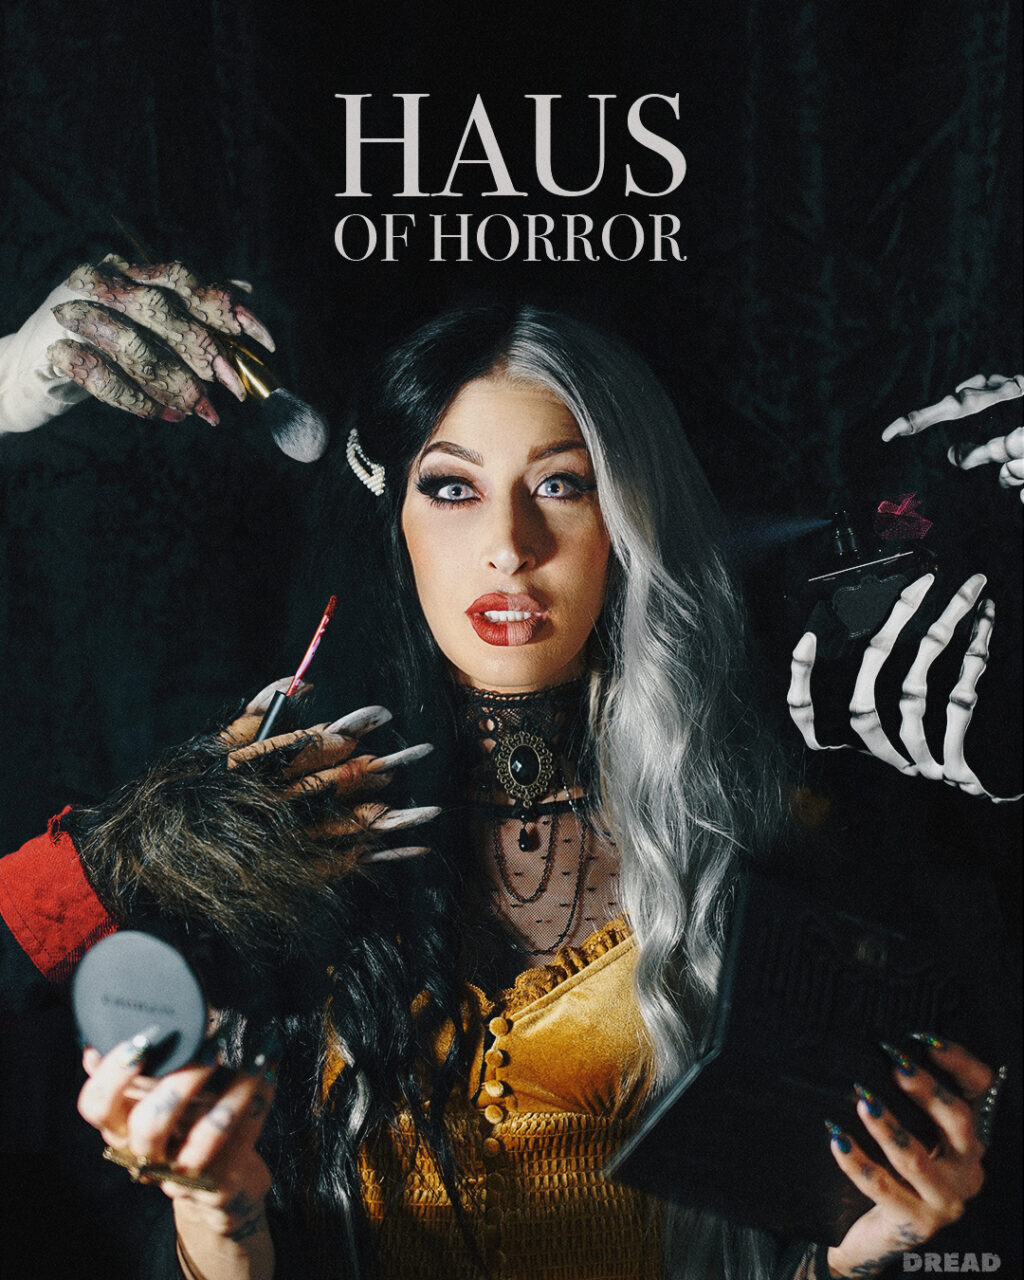 Haus Insta Post 1024x1280 - HAUS OF HORROR Episode 2: Vanessa Decker Visits FX Guru Jerry Constantine